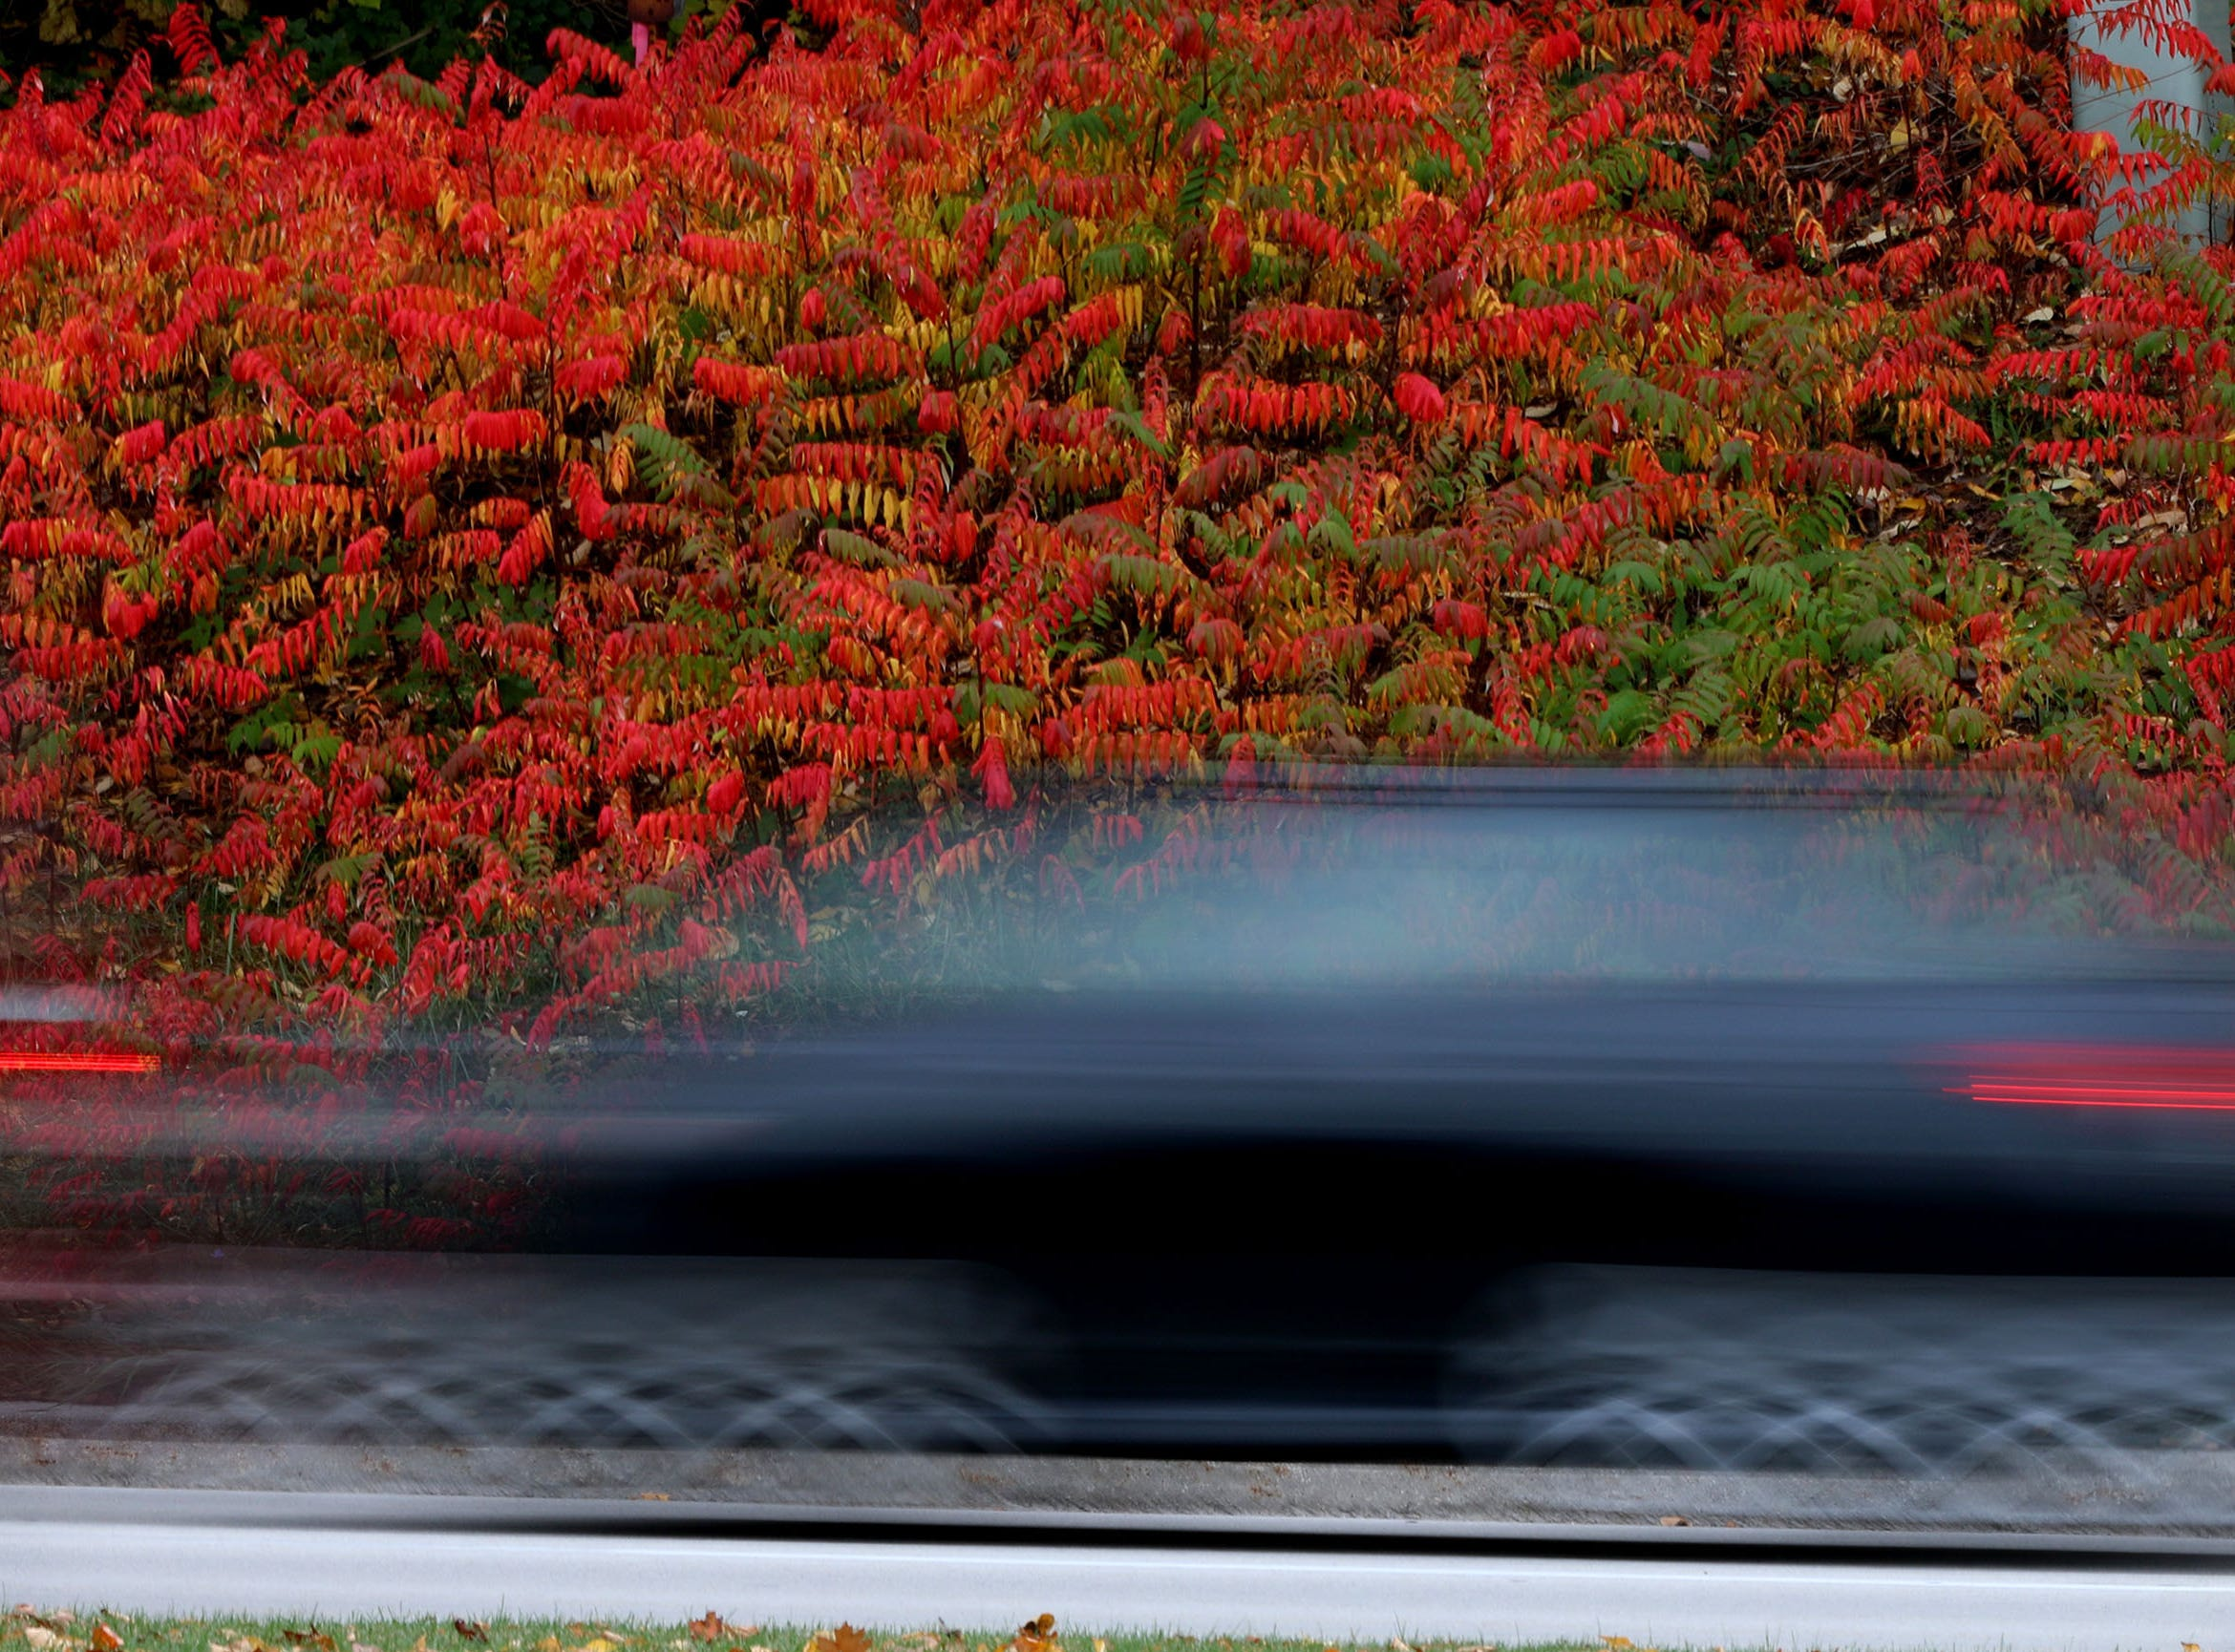 A car is a blur as it drives past colorful sumac trees along Taylor Drive, Friday, October 12, 2018, in Sheboygan, Wis.